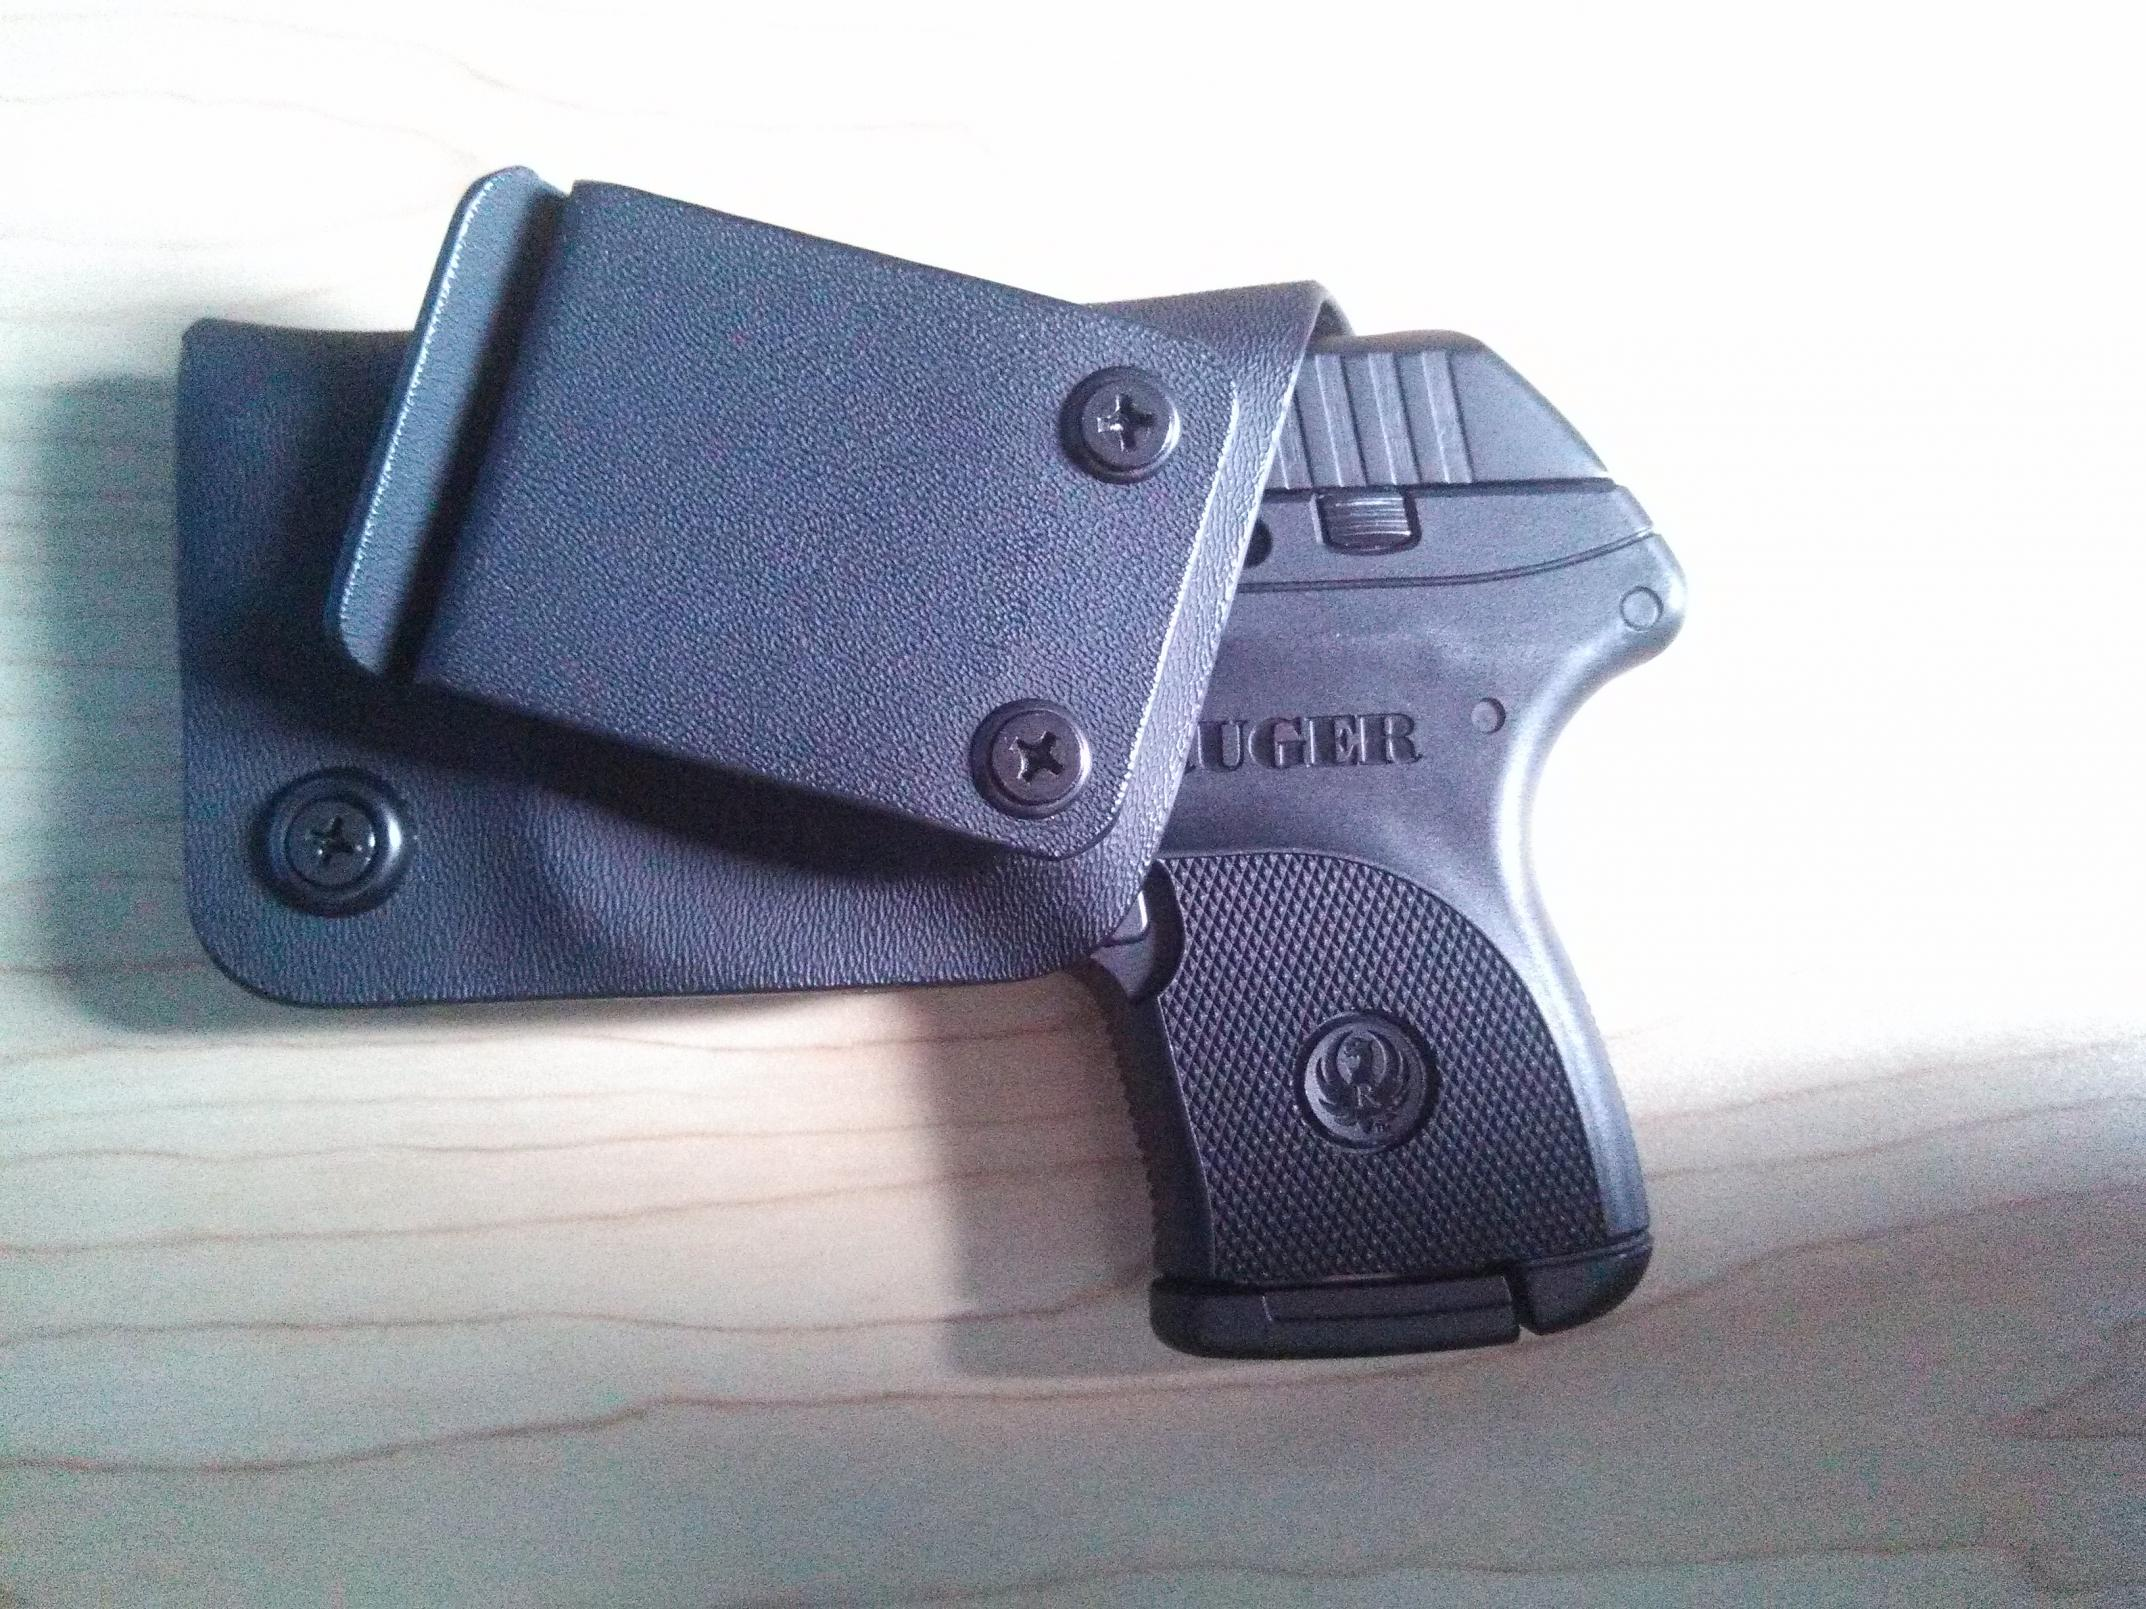 Aholster Pwii Review-img_20130317_141918_246.jpg